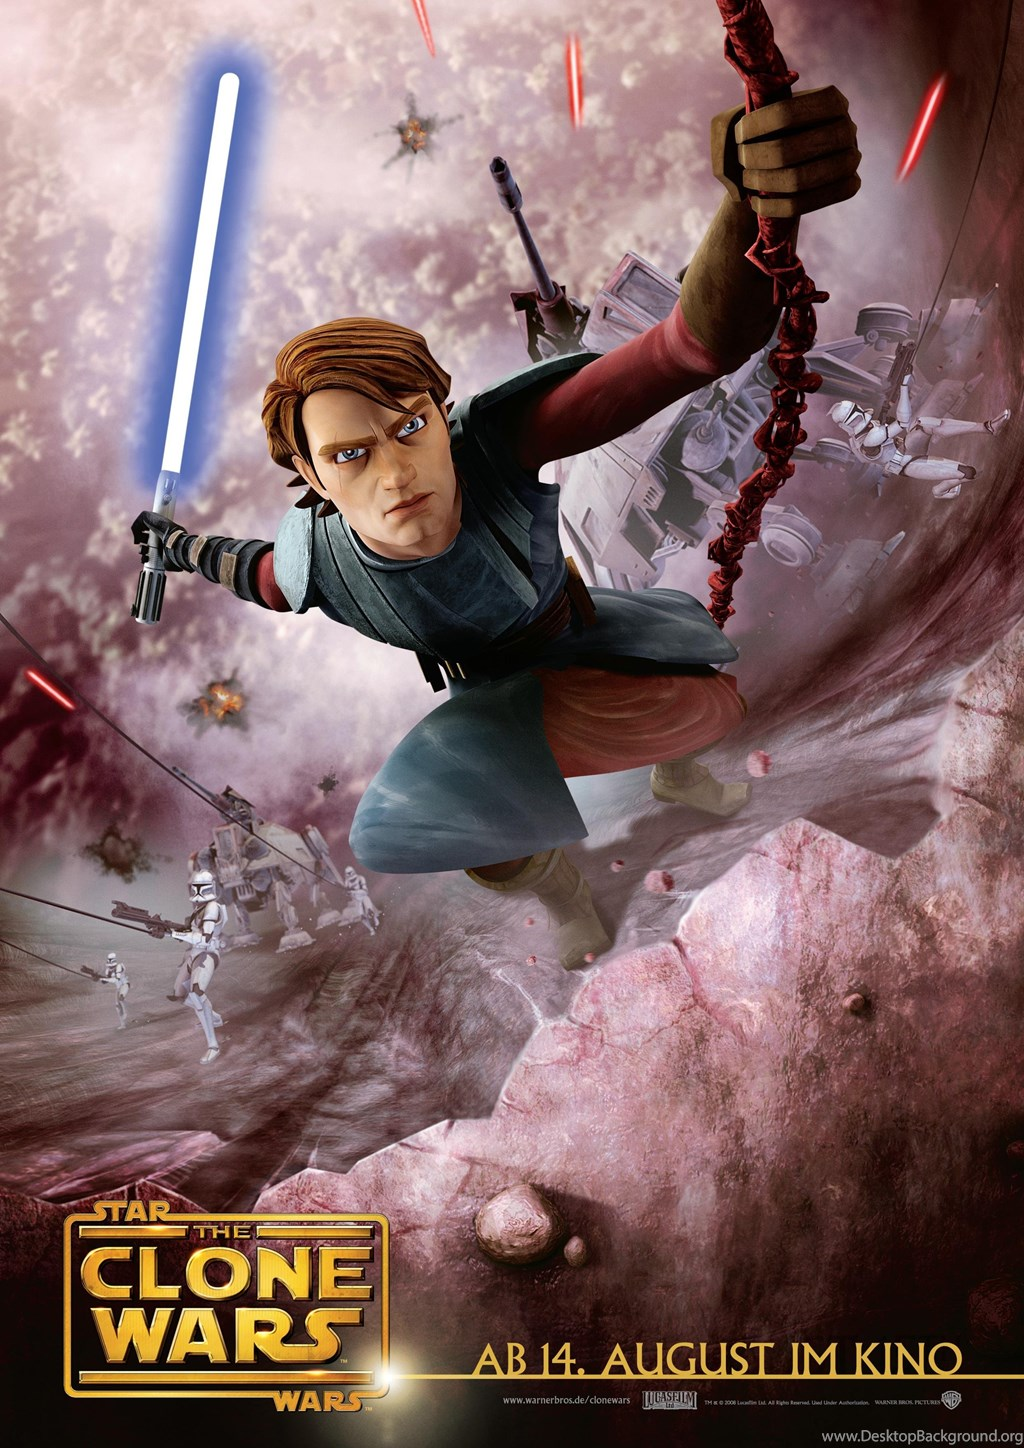 Star Wars The Clone Wars Anakin Skywalker Wallpapers And